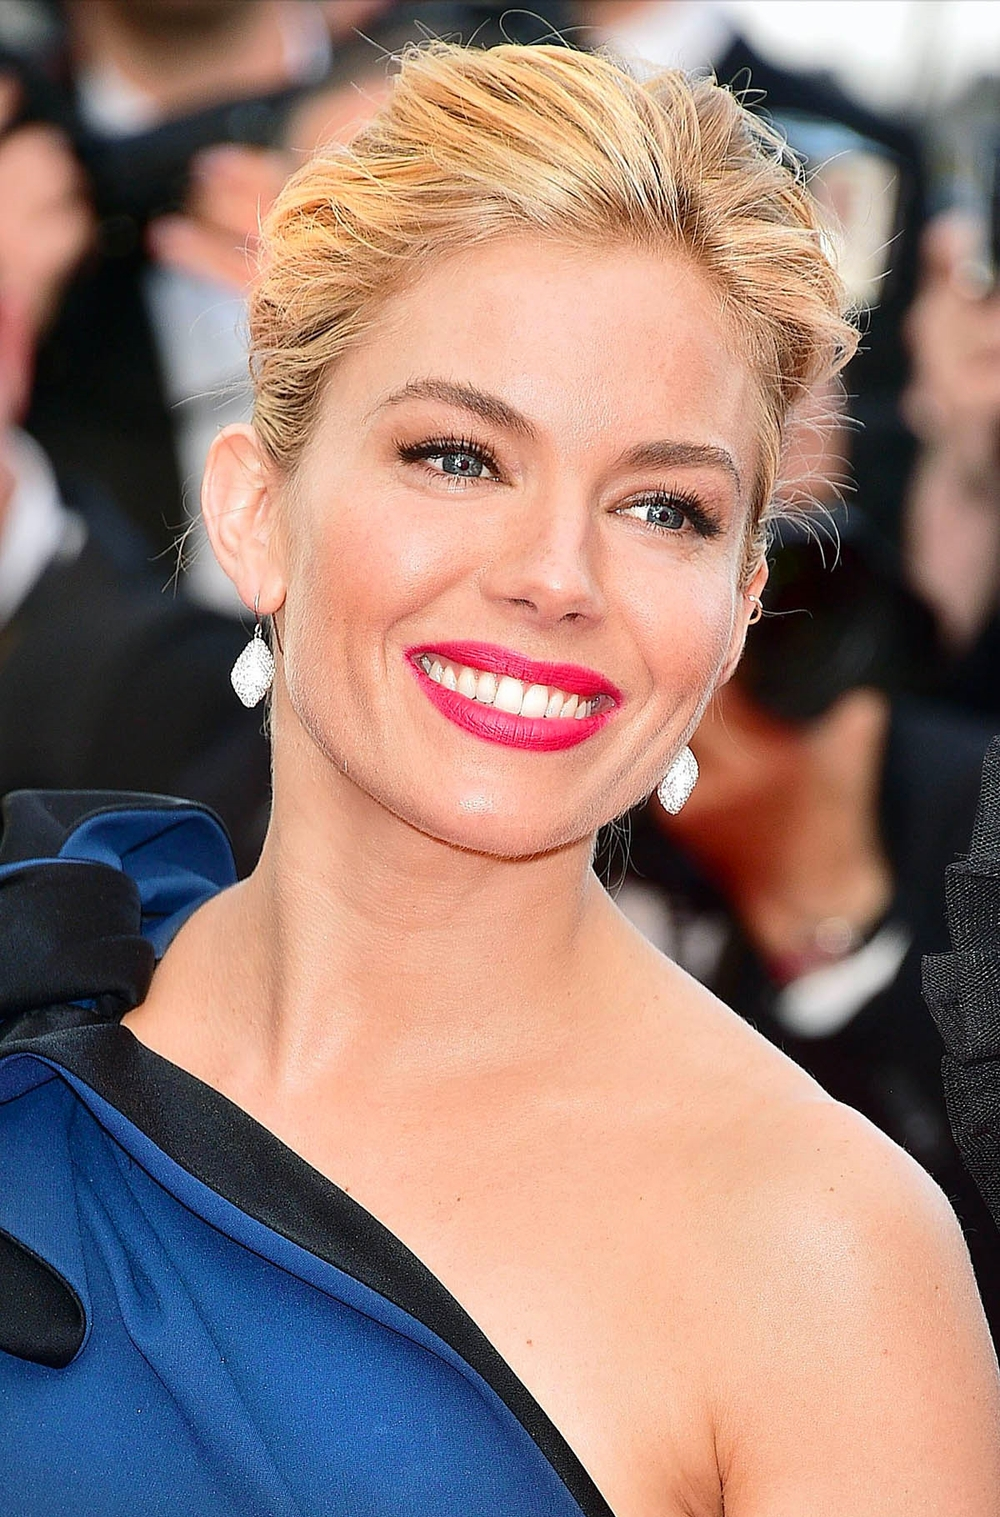 Sienna Miller at the Cannes Opening Ceremony                  Photo by Getty